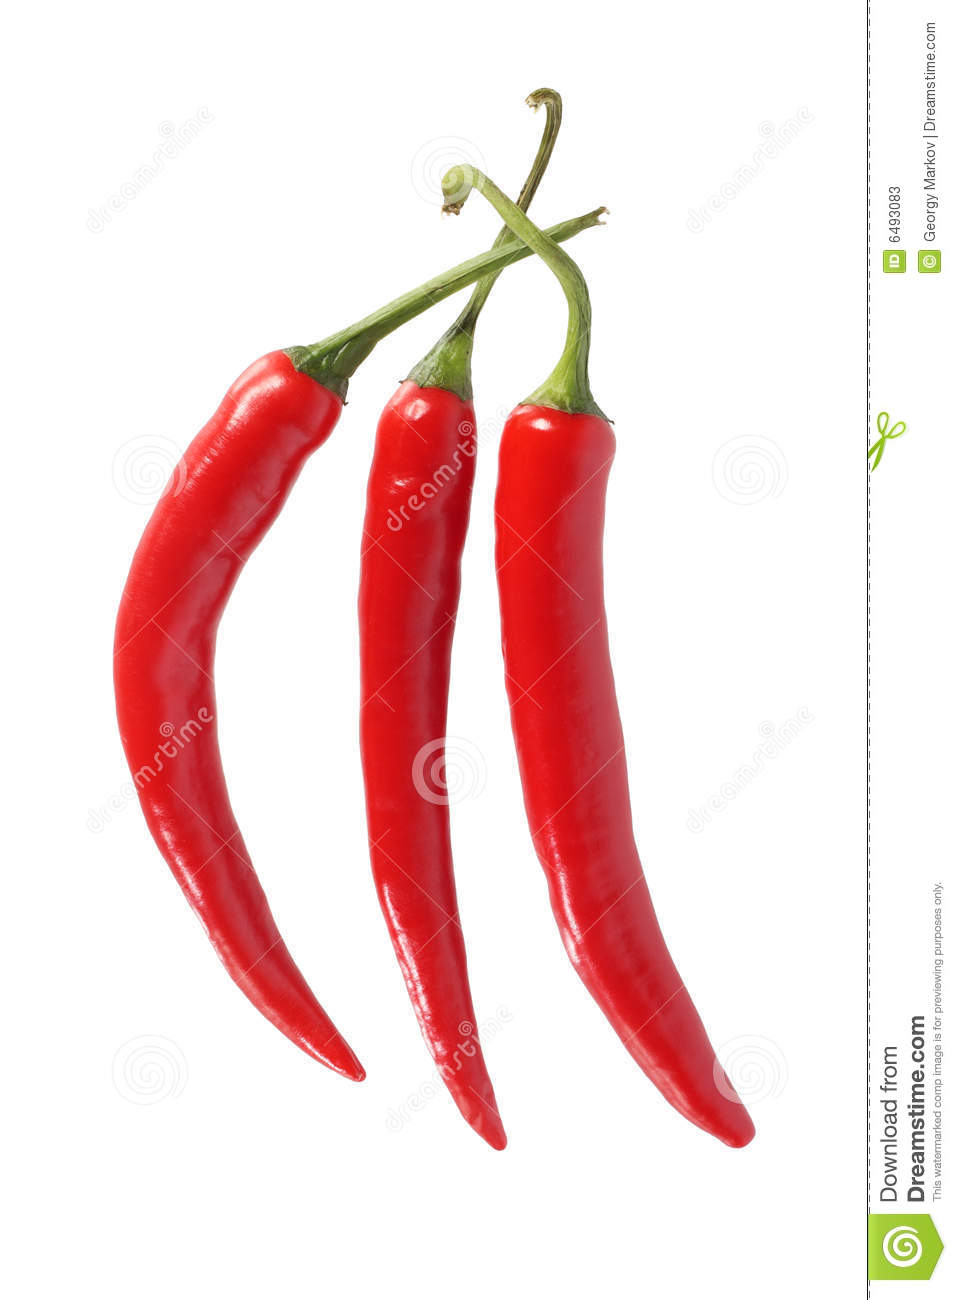 red chili peppers stock image image of chilli cuisine 6493083. Black Bedroom Furniture Sets. Home Design Ideas